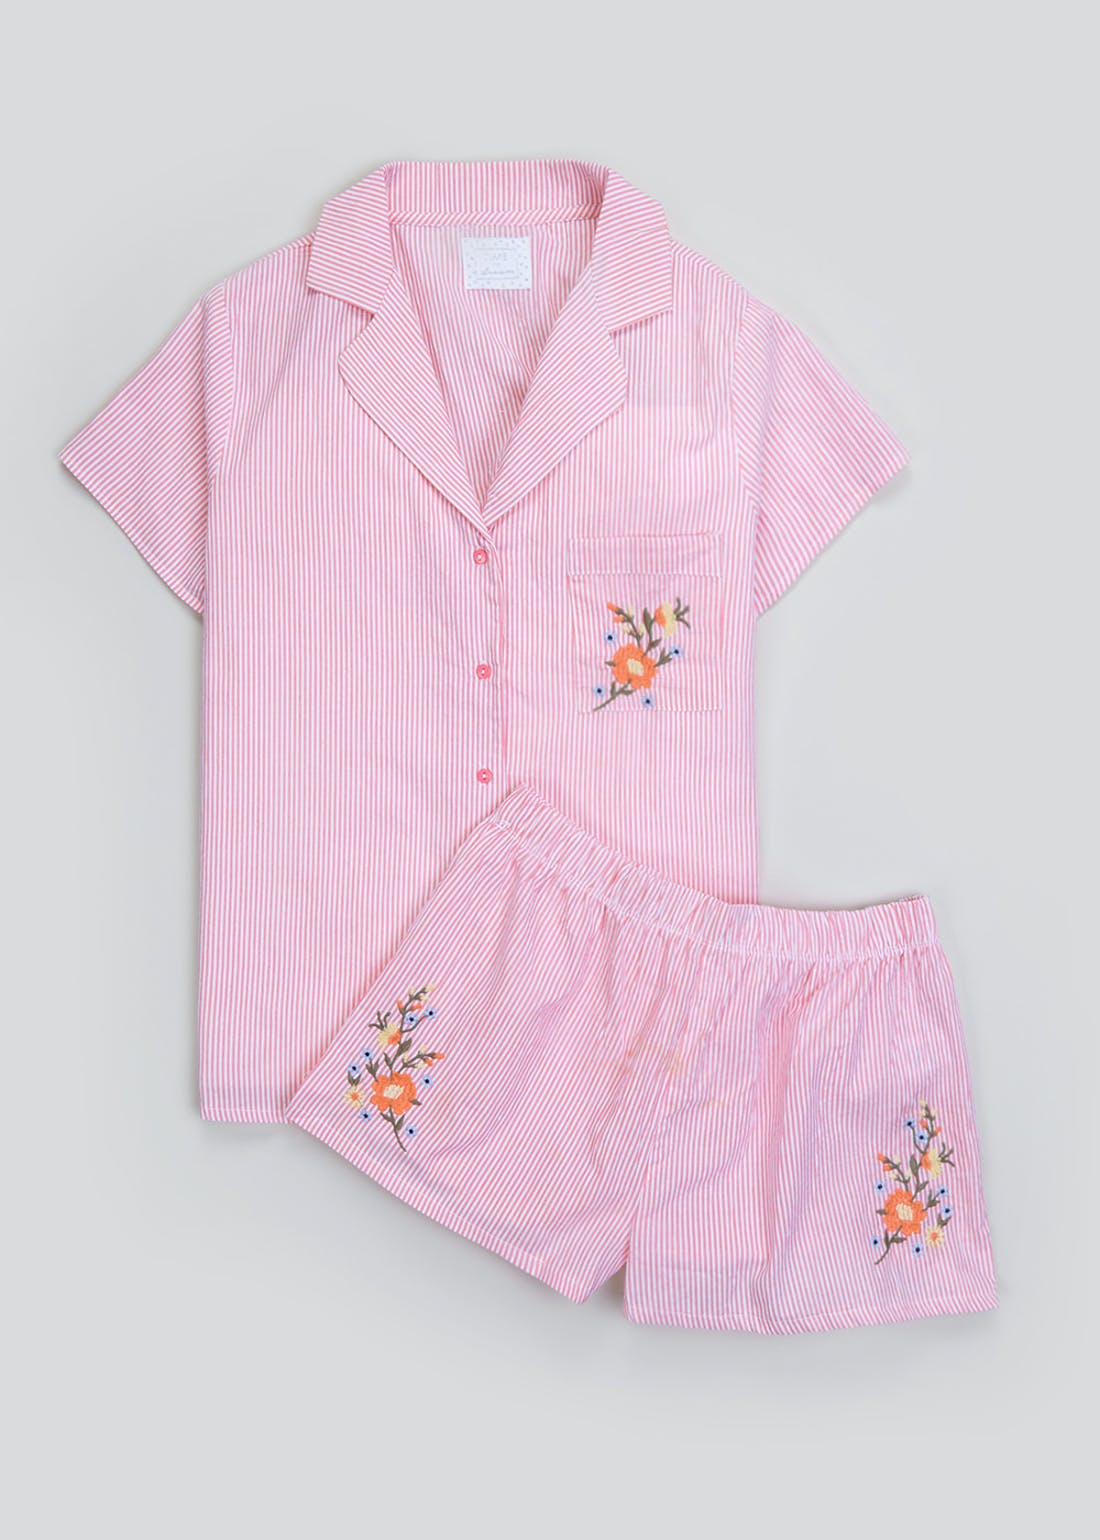 Stripe Floral Embroidered Short Pyjama Set